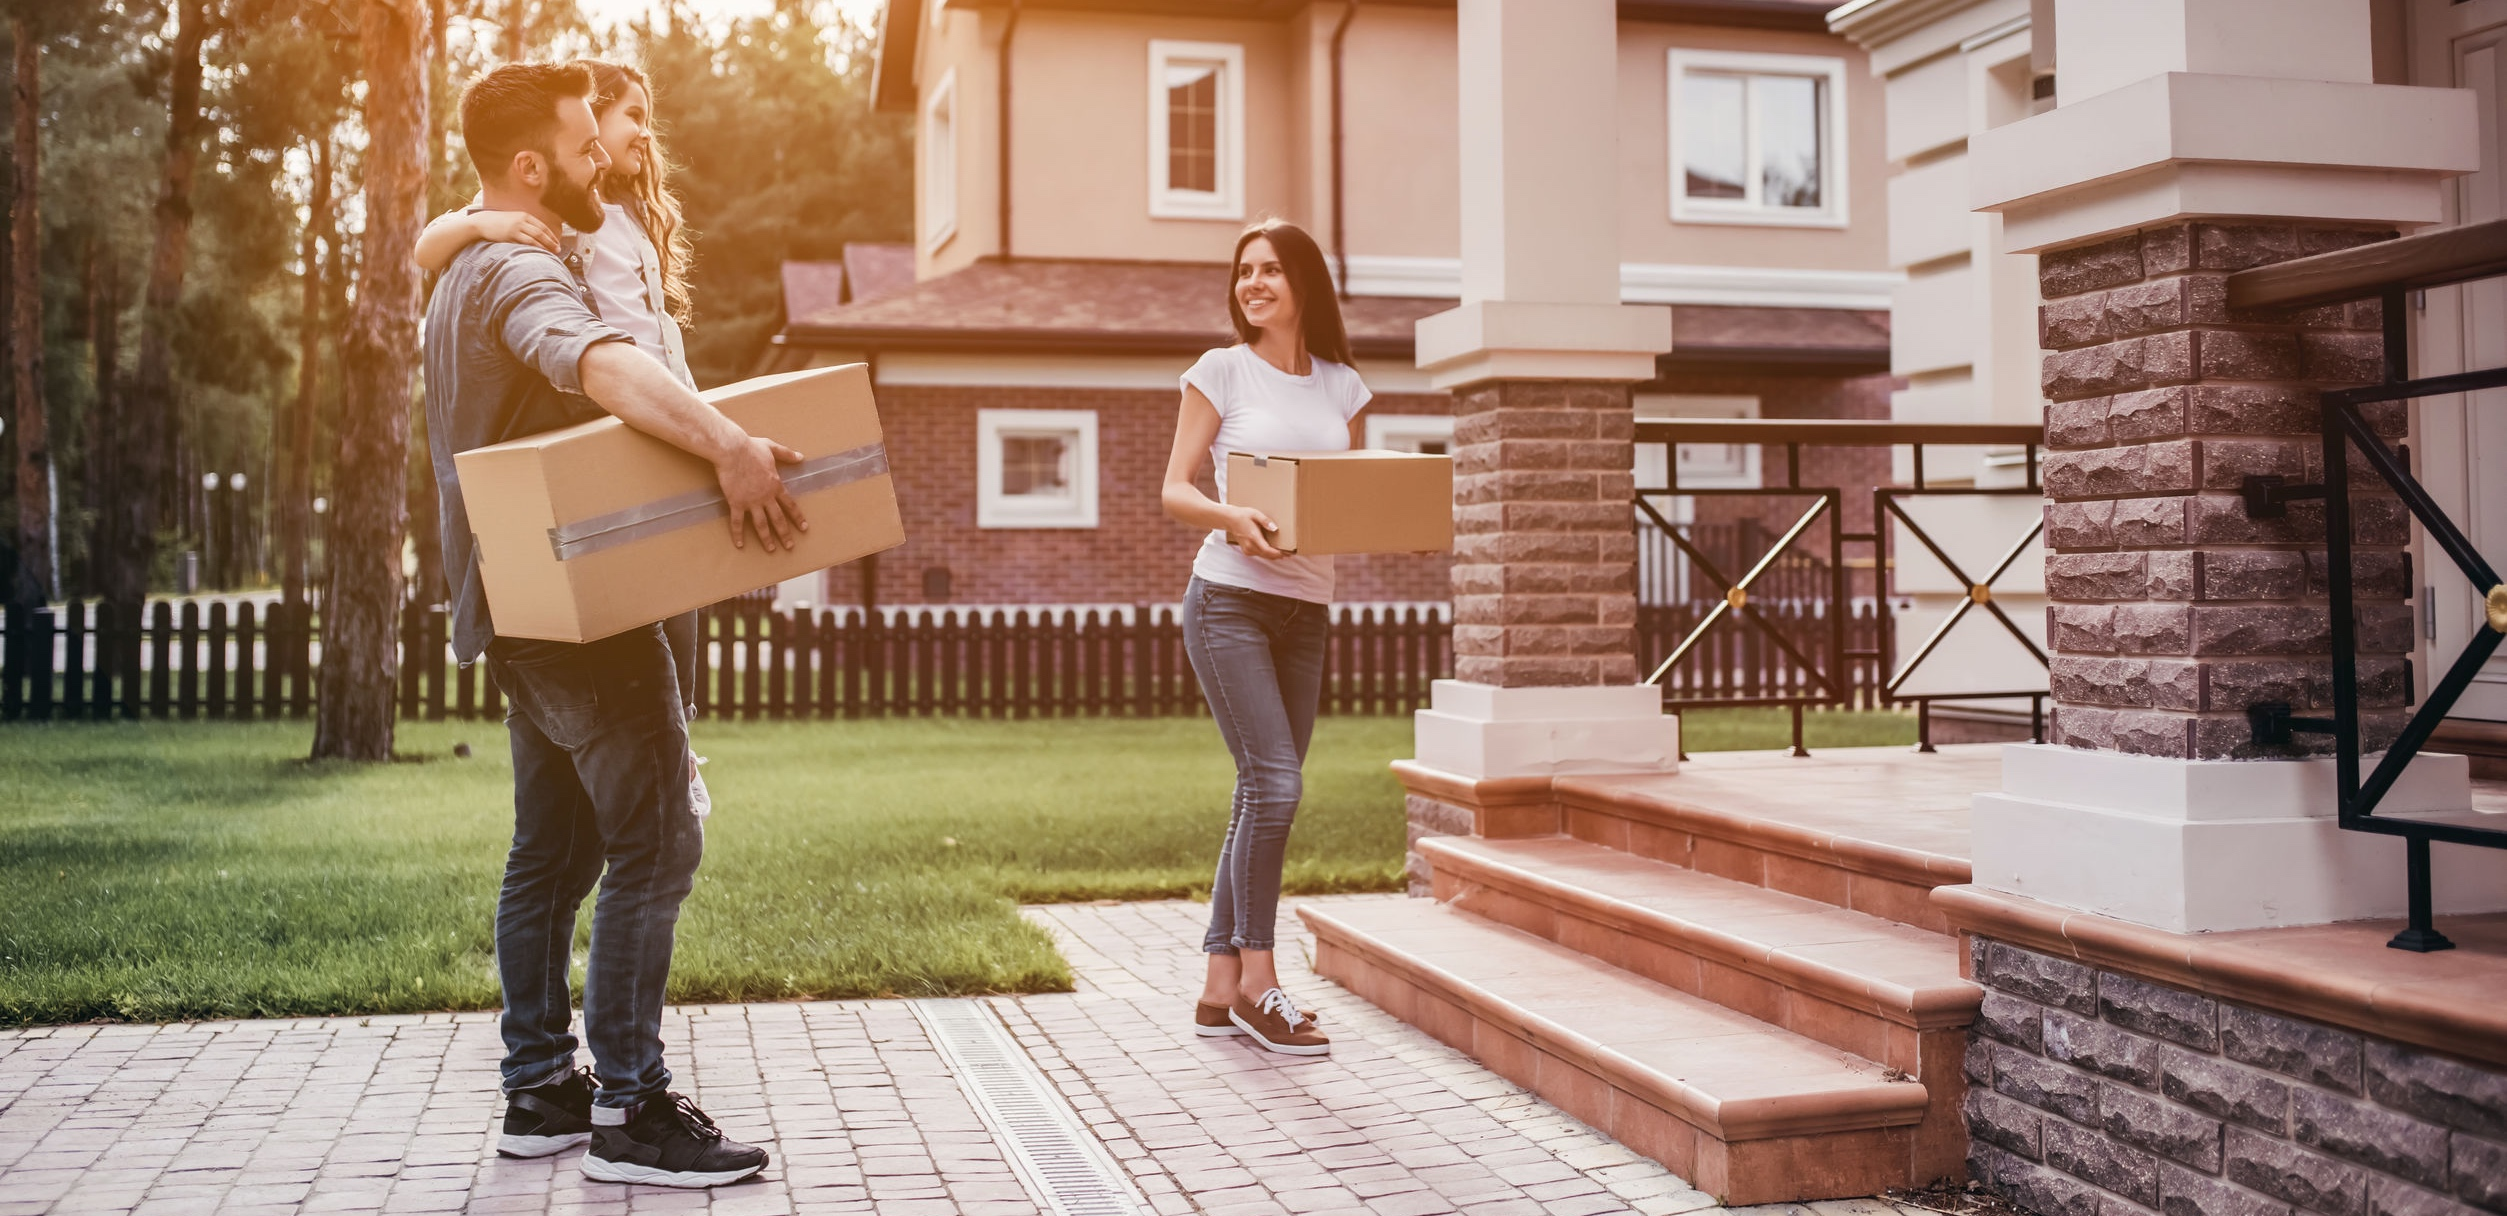 Couple standing near new house with cardboard boxes